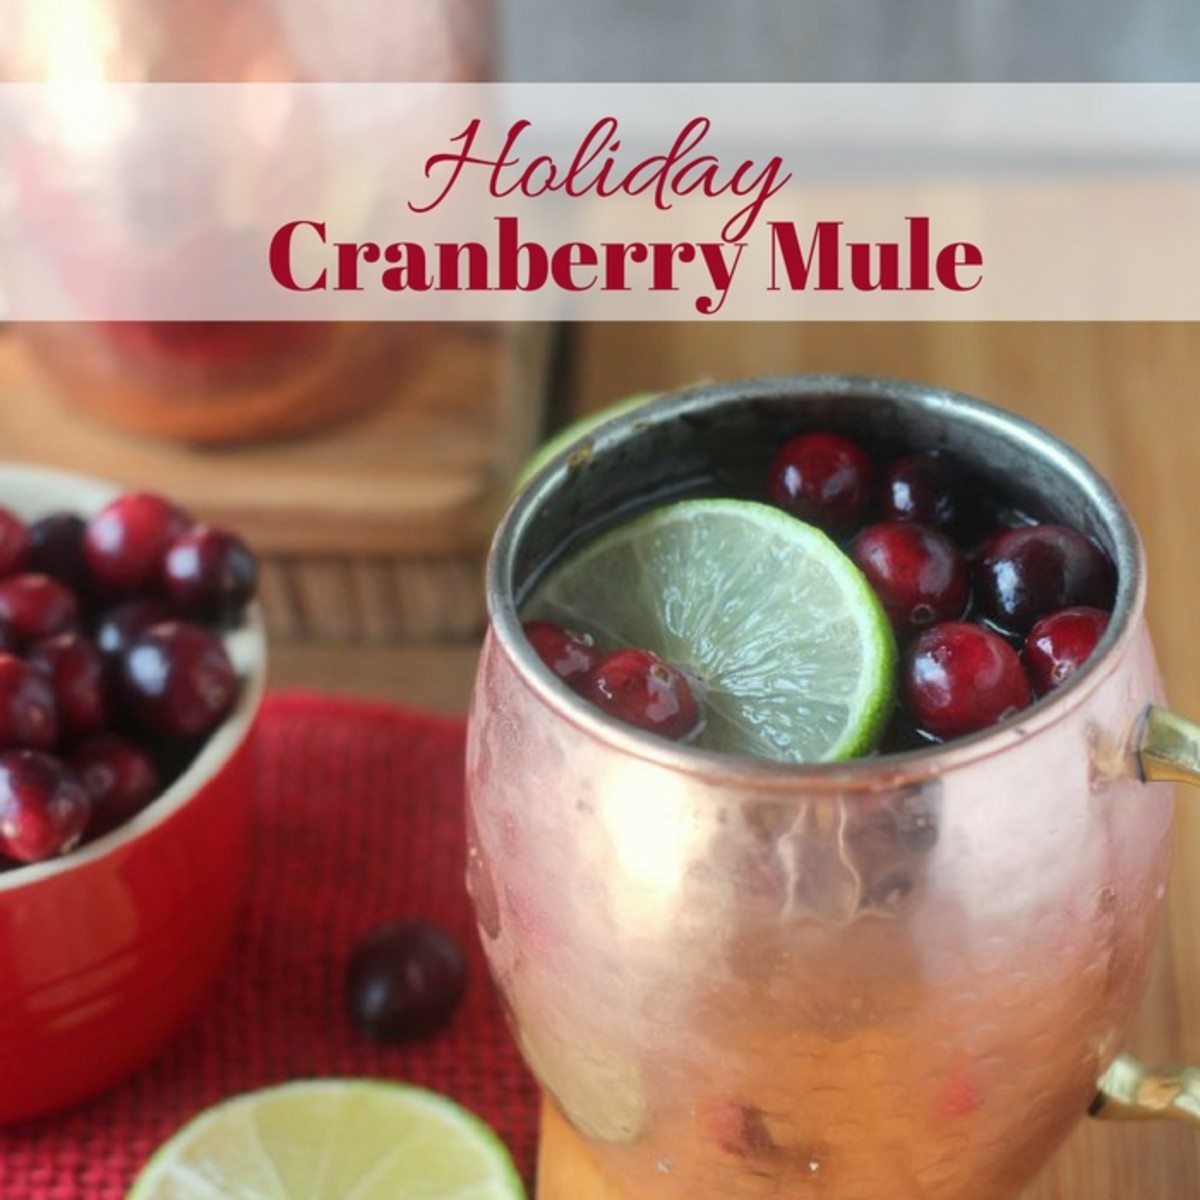 Holiday Cranberry Mule